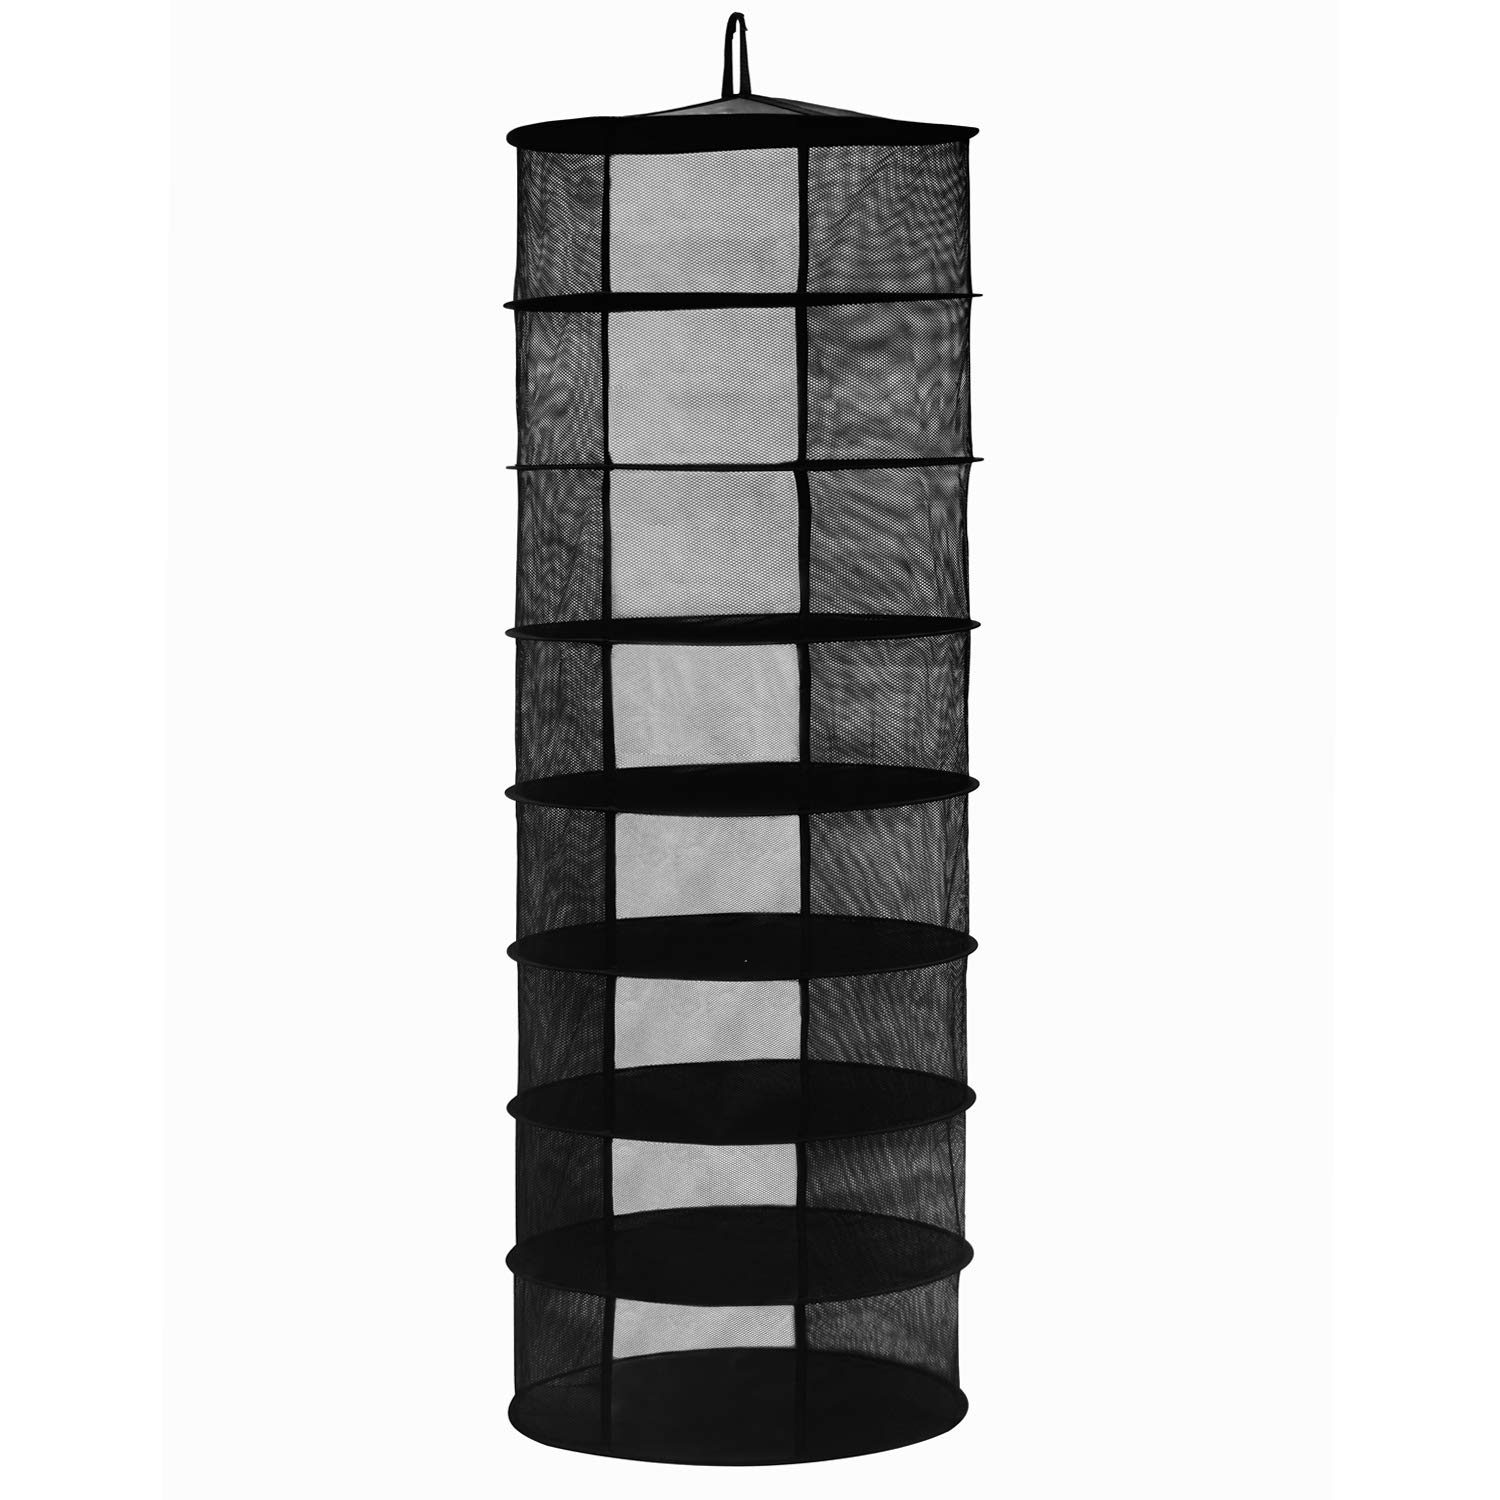 Herb Drying Rack Hanging Herb Dryer Net W/Carry Bag Mesh for Herbs Buds Plants (D24-8 Layer, Black)